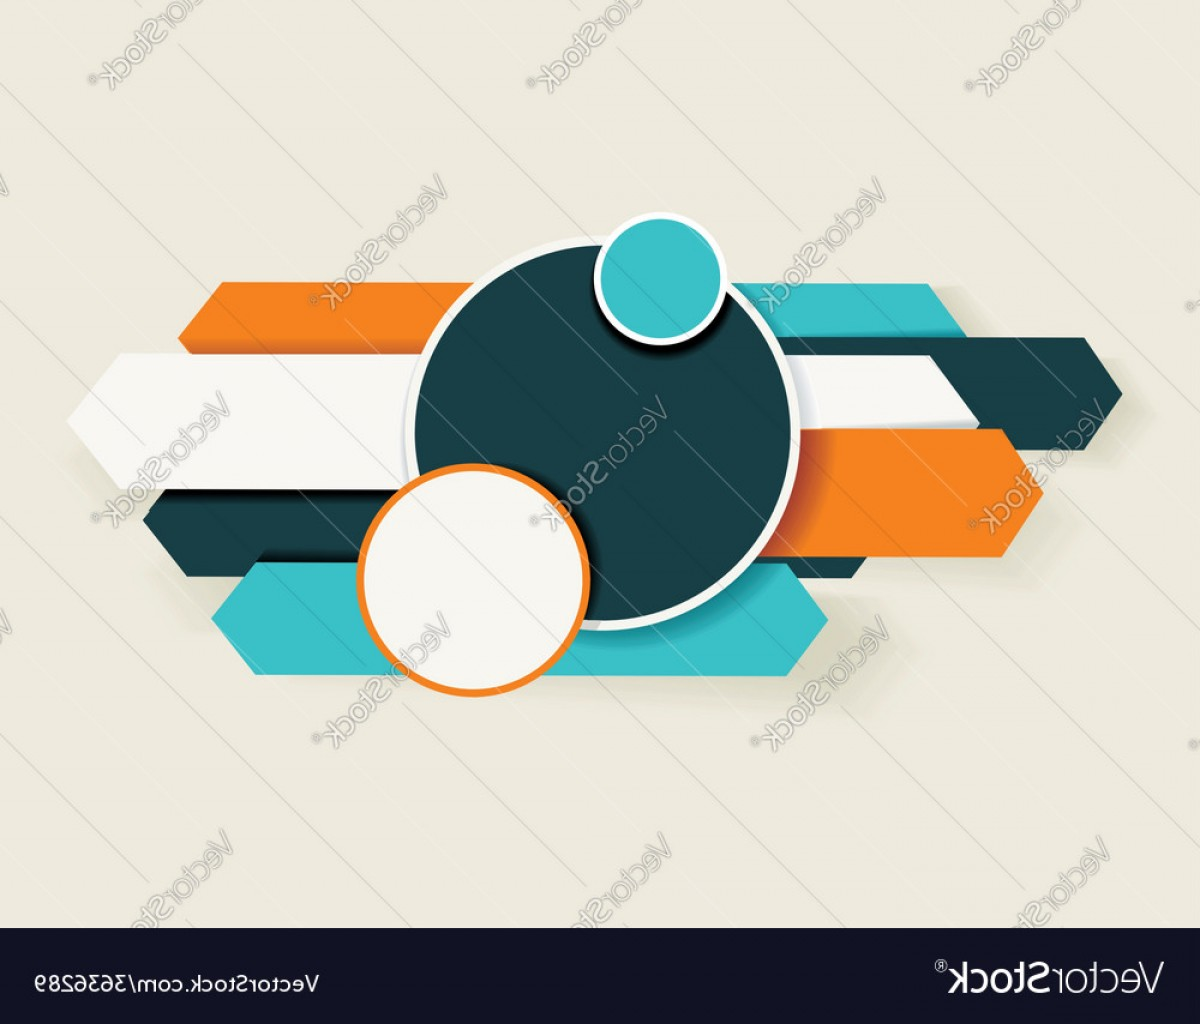 What Are Vectors Used For: Abstract Arrows And Circles Can Be Used For Vector